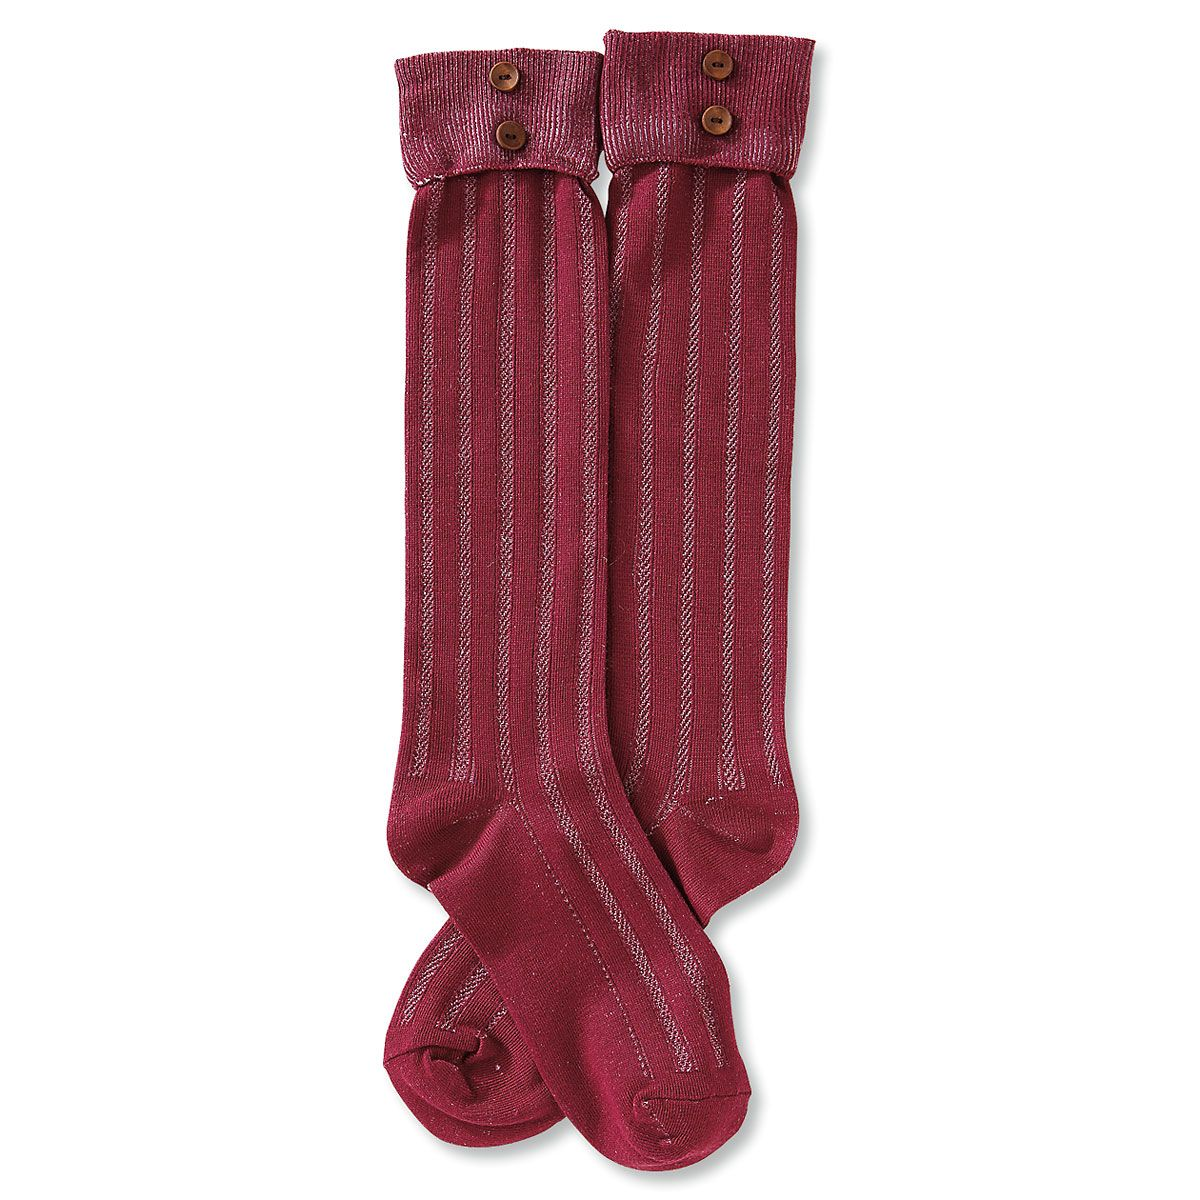 Boot Socks - Burgundy Rolled Cuff